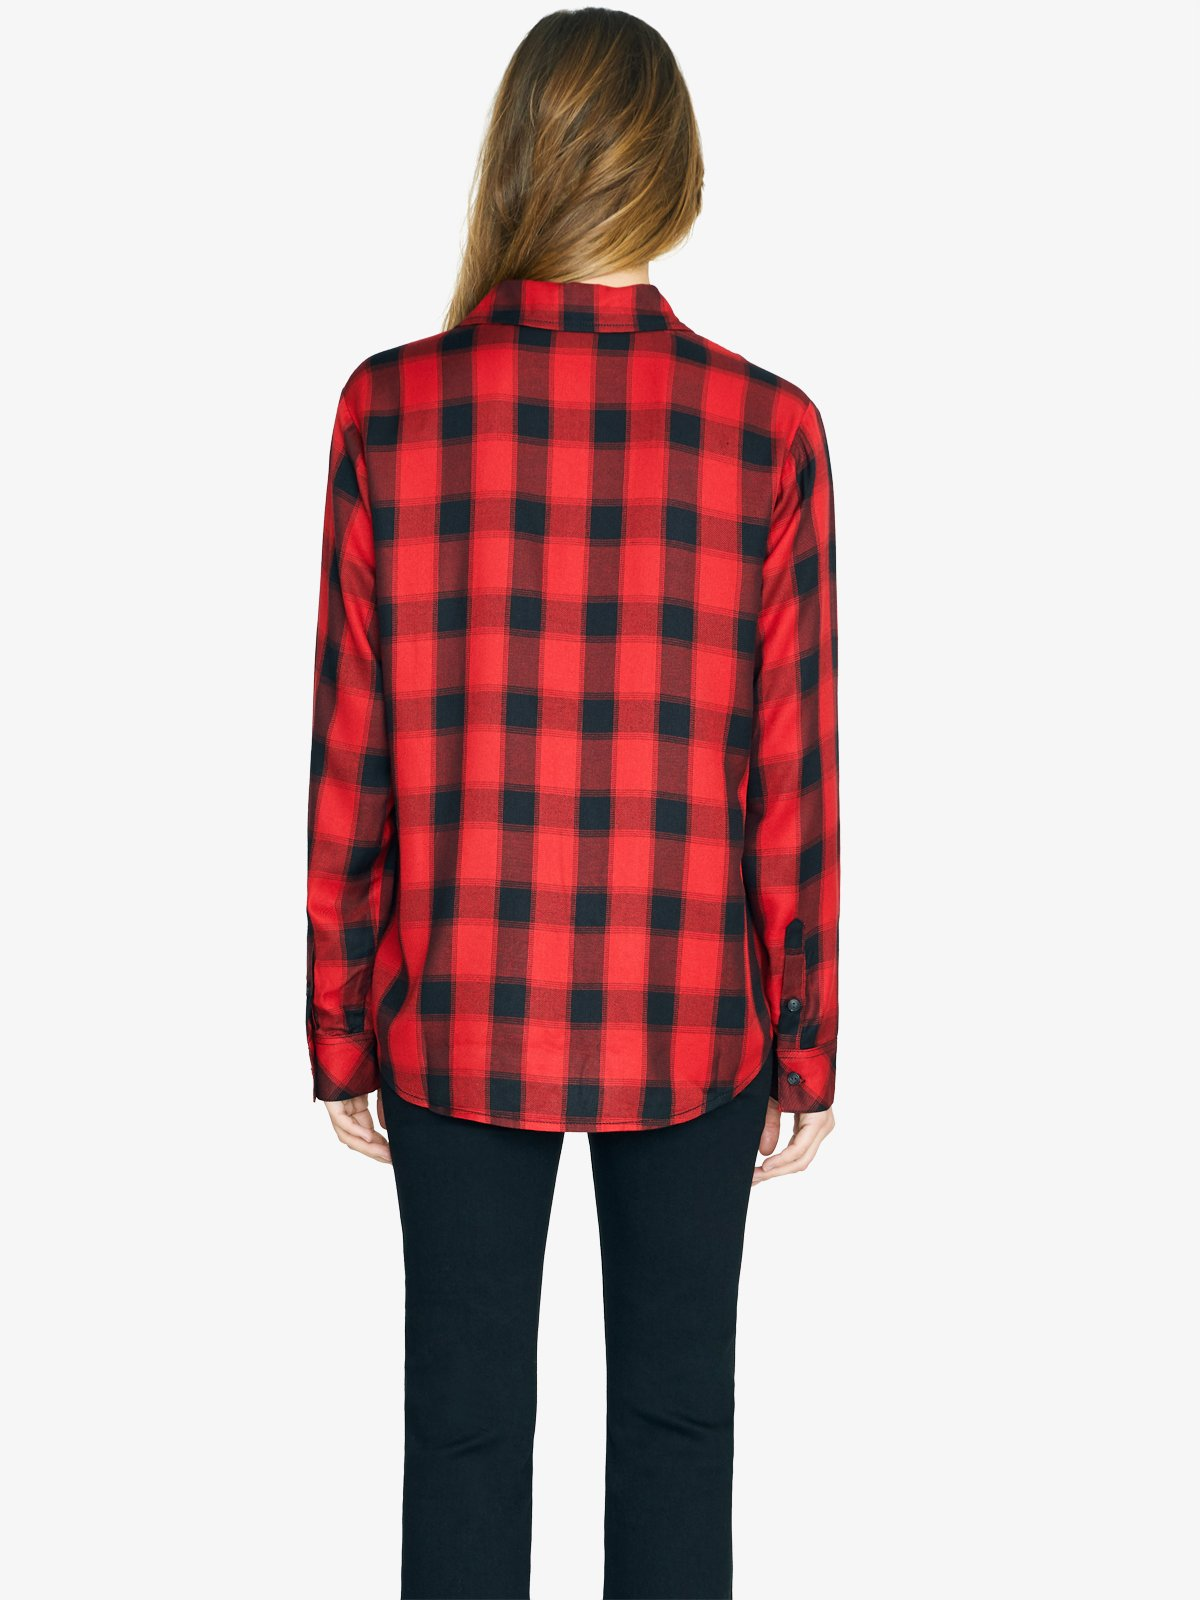 New Generation Boyfriend Shirt | Fiery Plaid